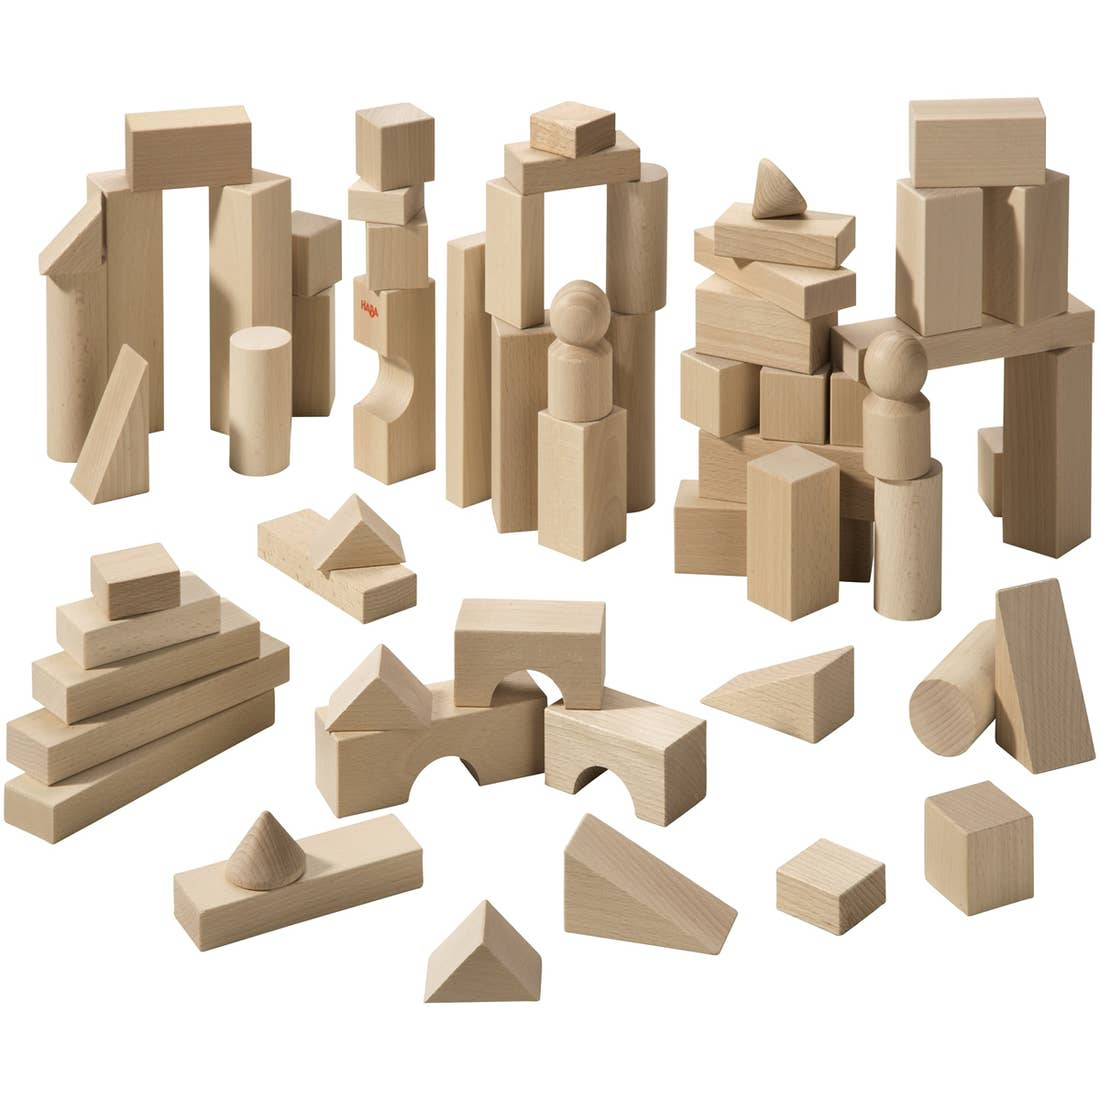 Haba Large Wooden Block Set